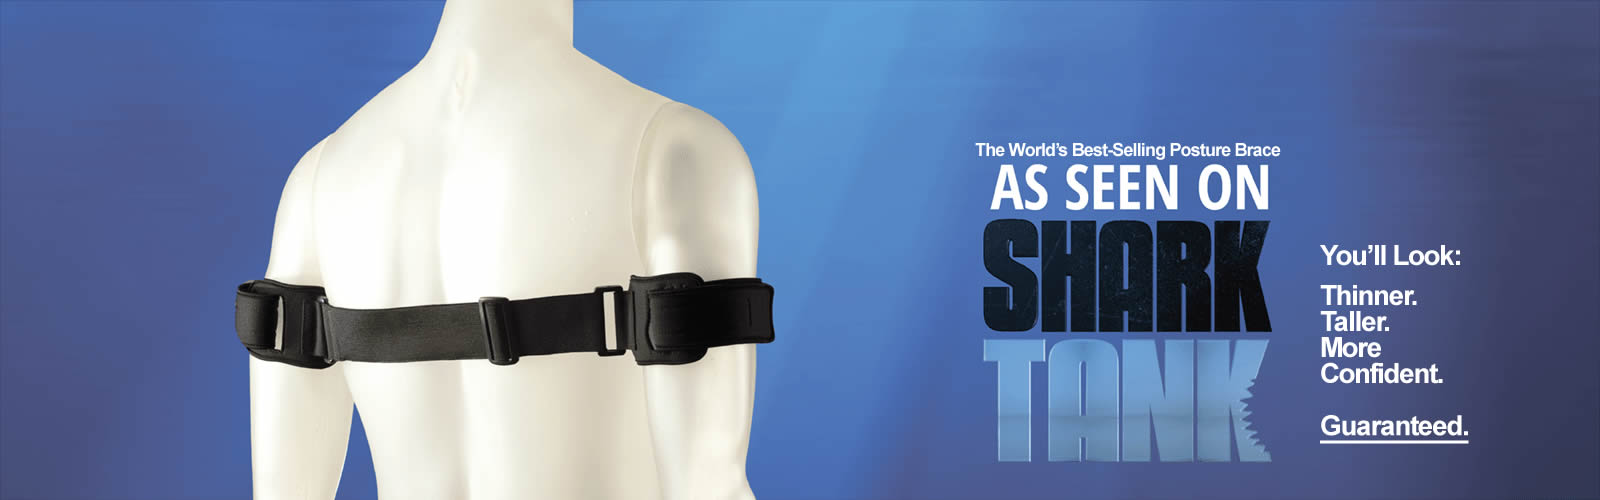 Posturenow 174 The 1 Best Selling Posture Corrector Brace